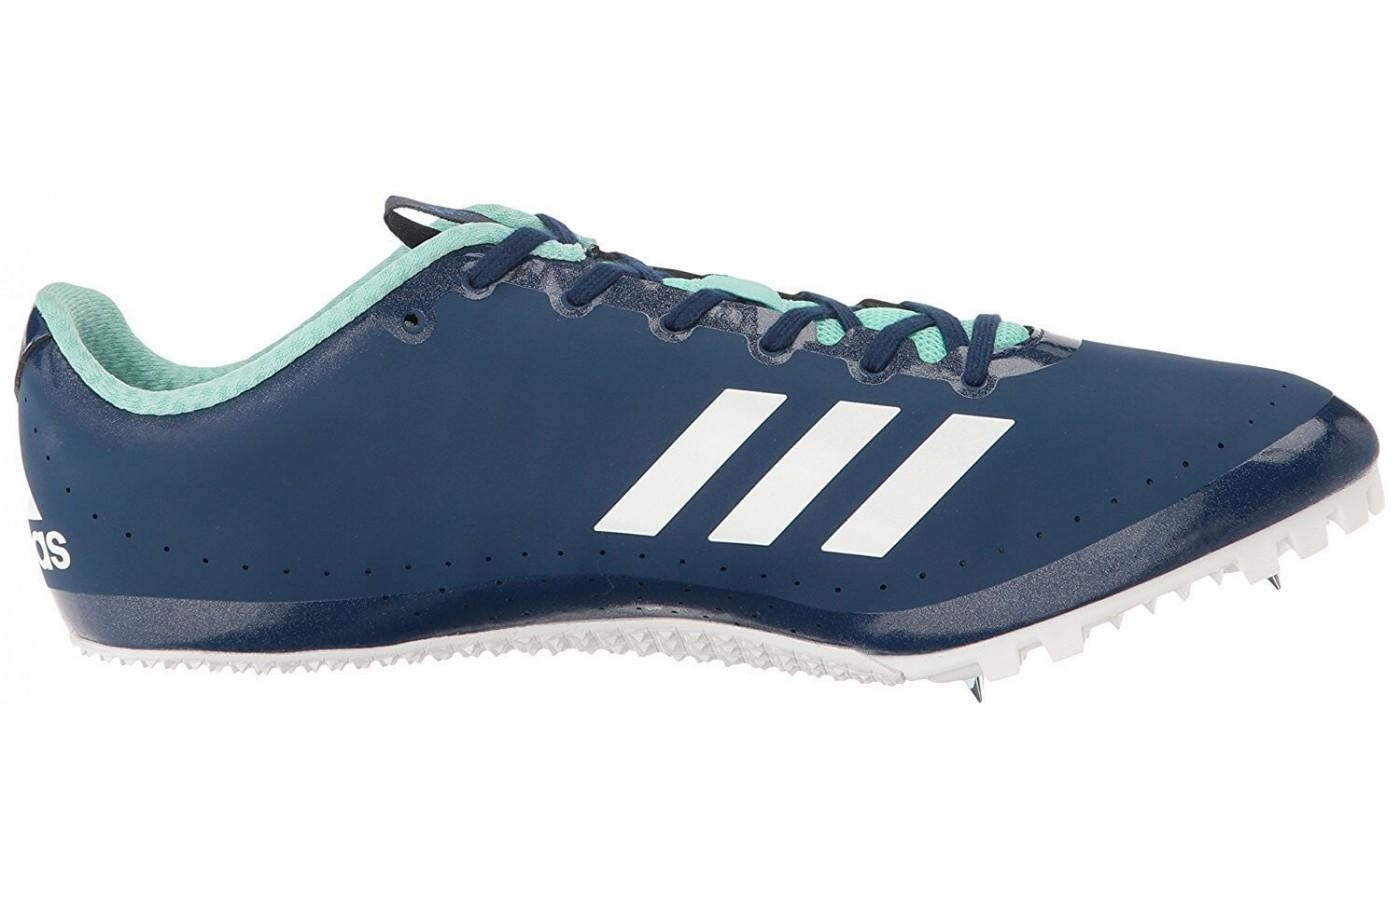 The Adidas Sprintstar has great energy return and durability